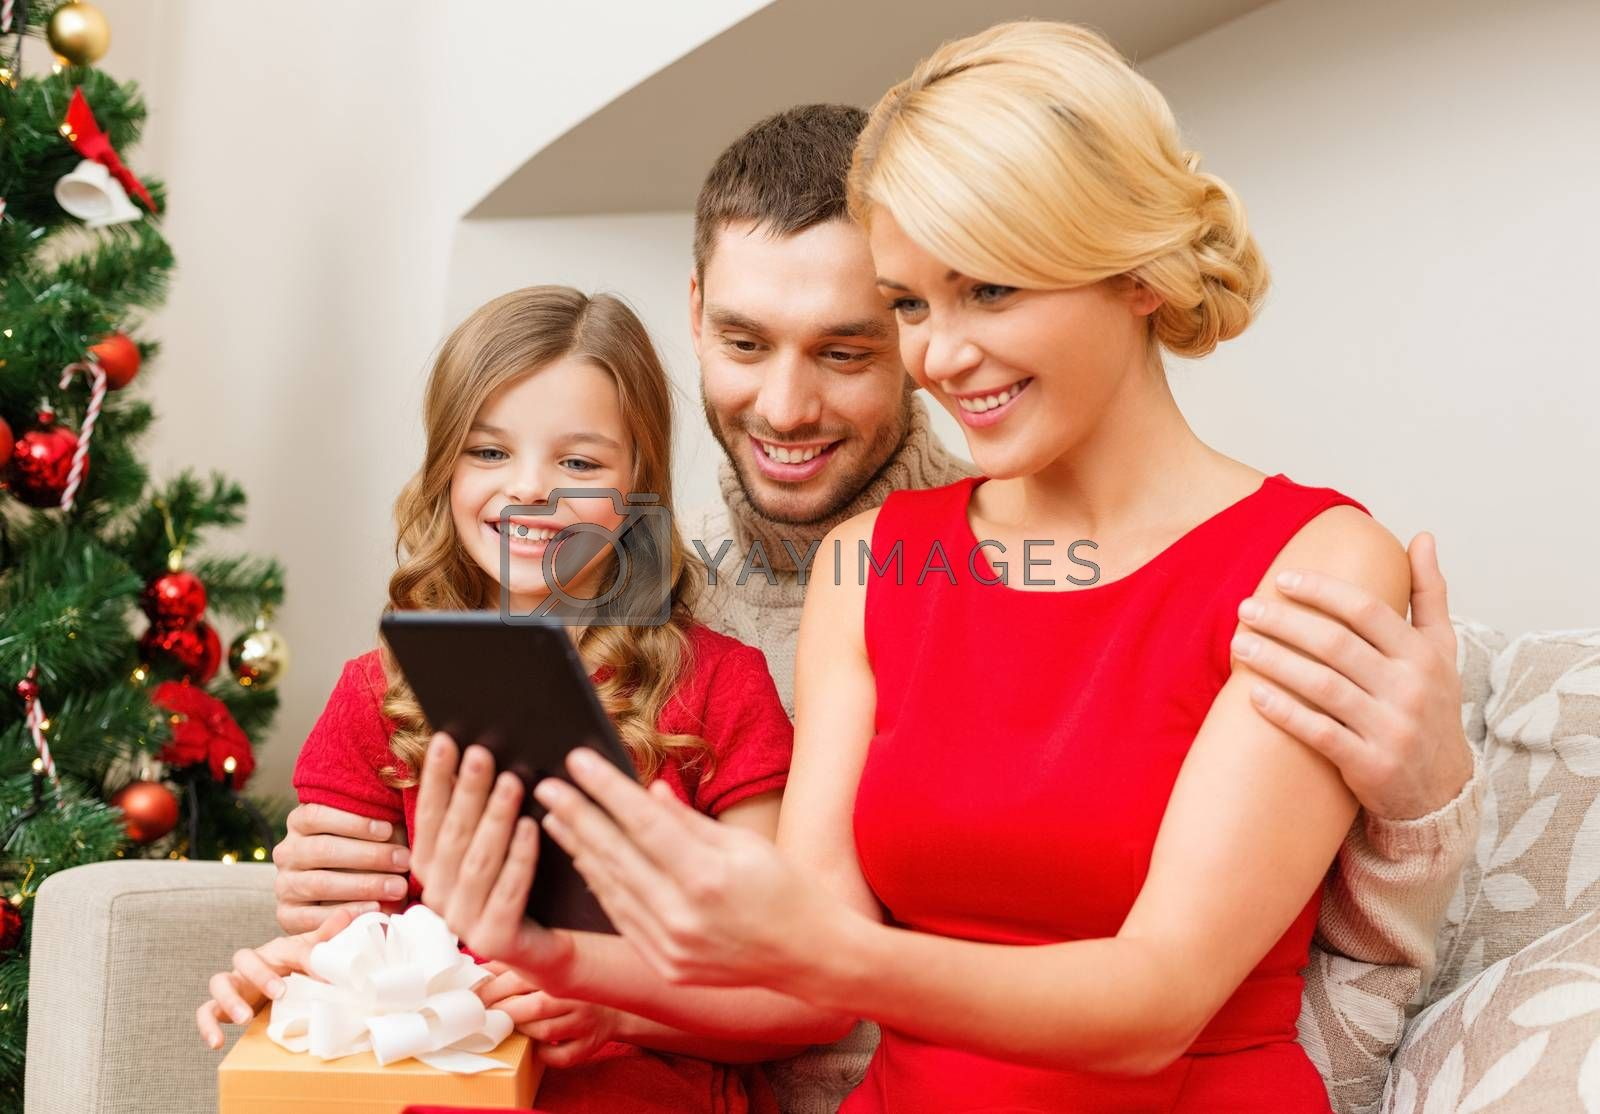 family, christmas, happiness, technology and people concept - smiling family with tablet pc